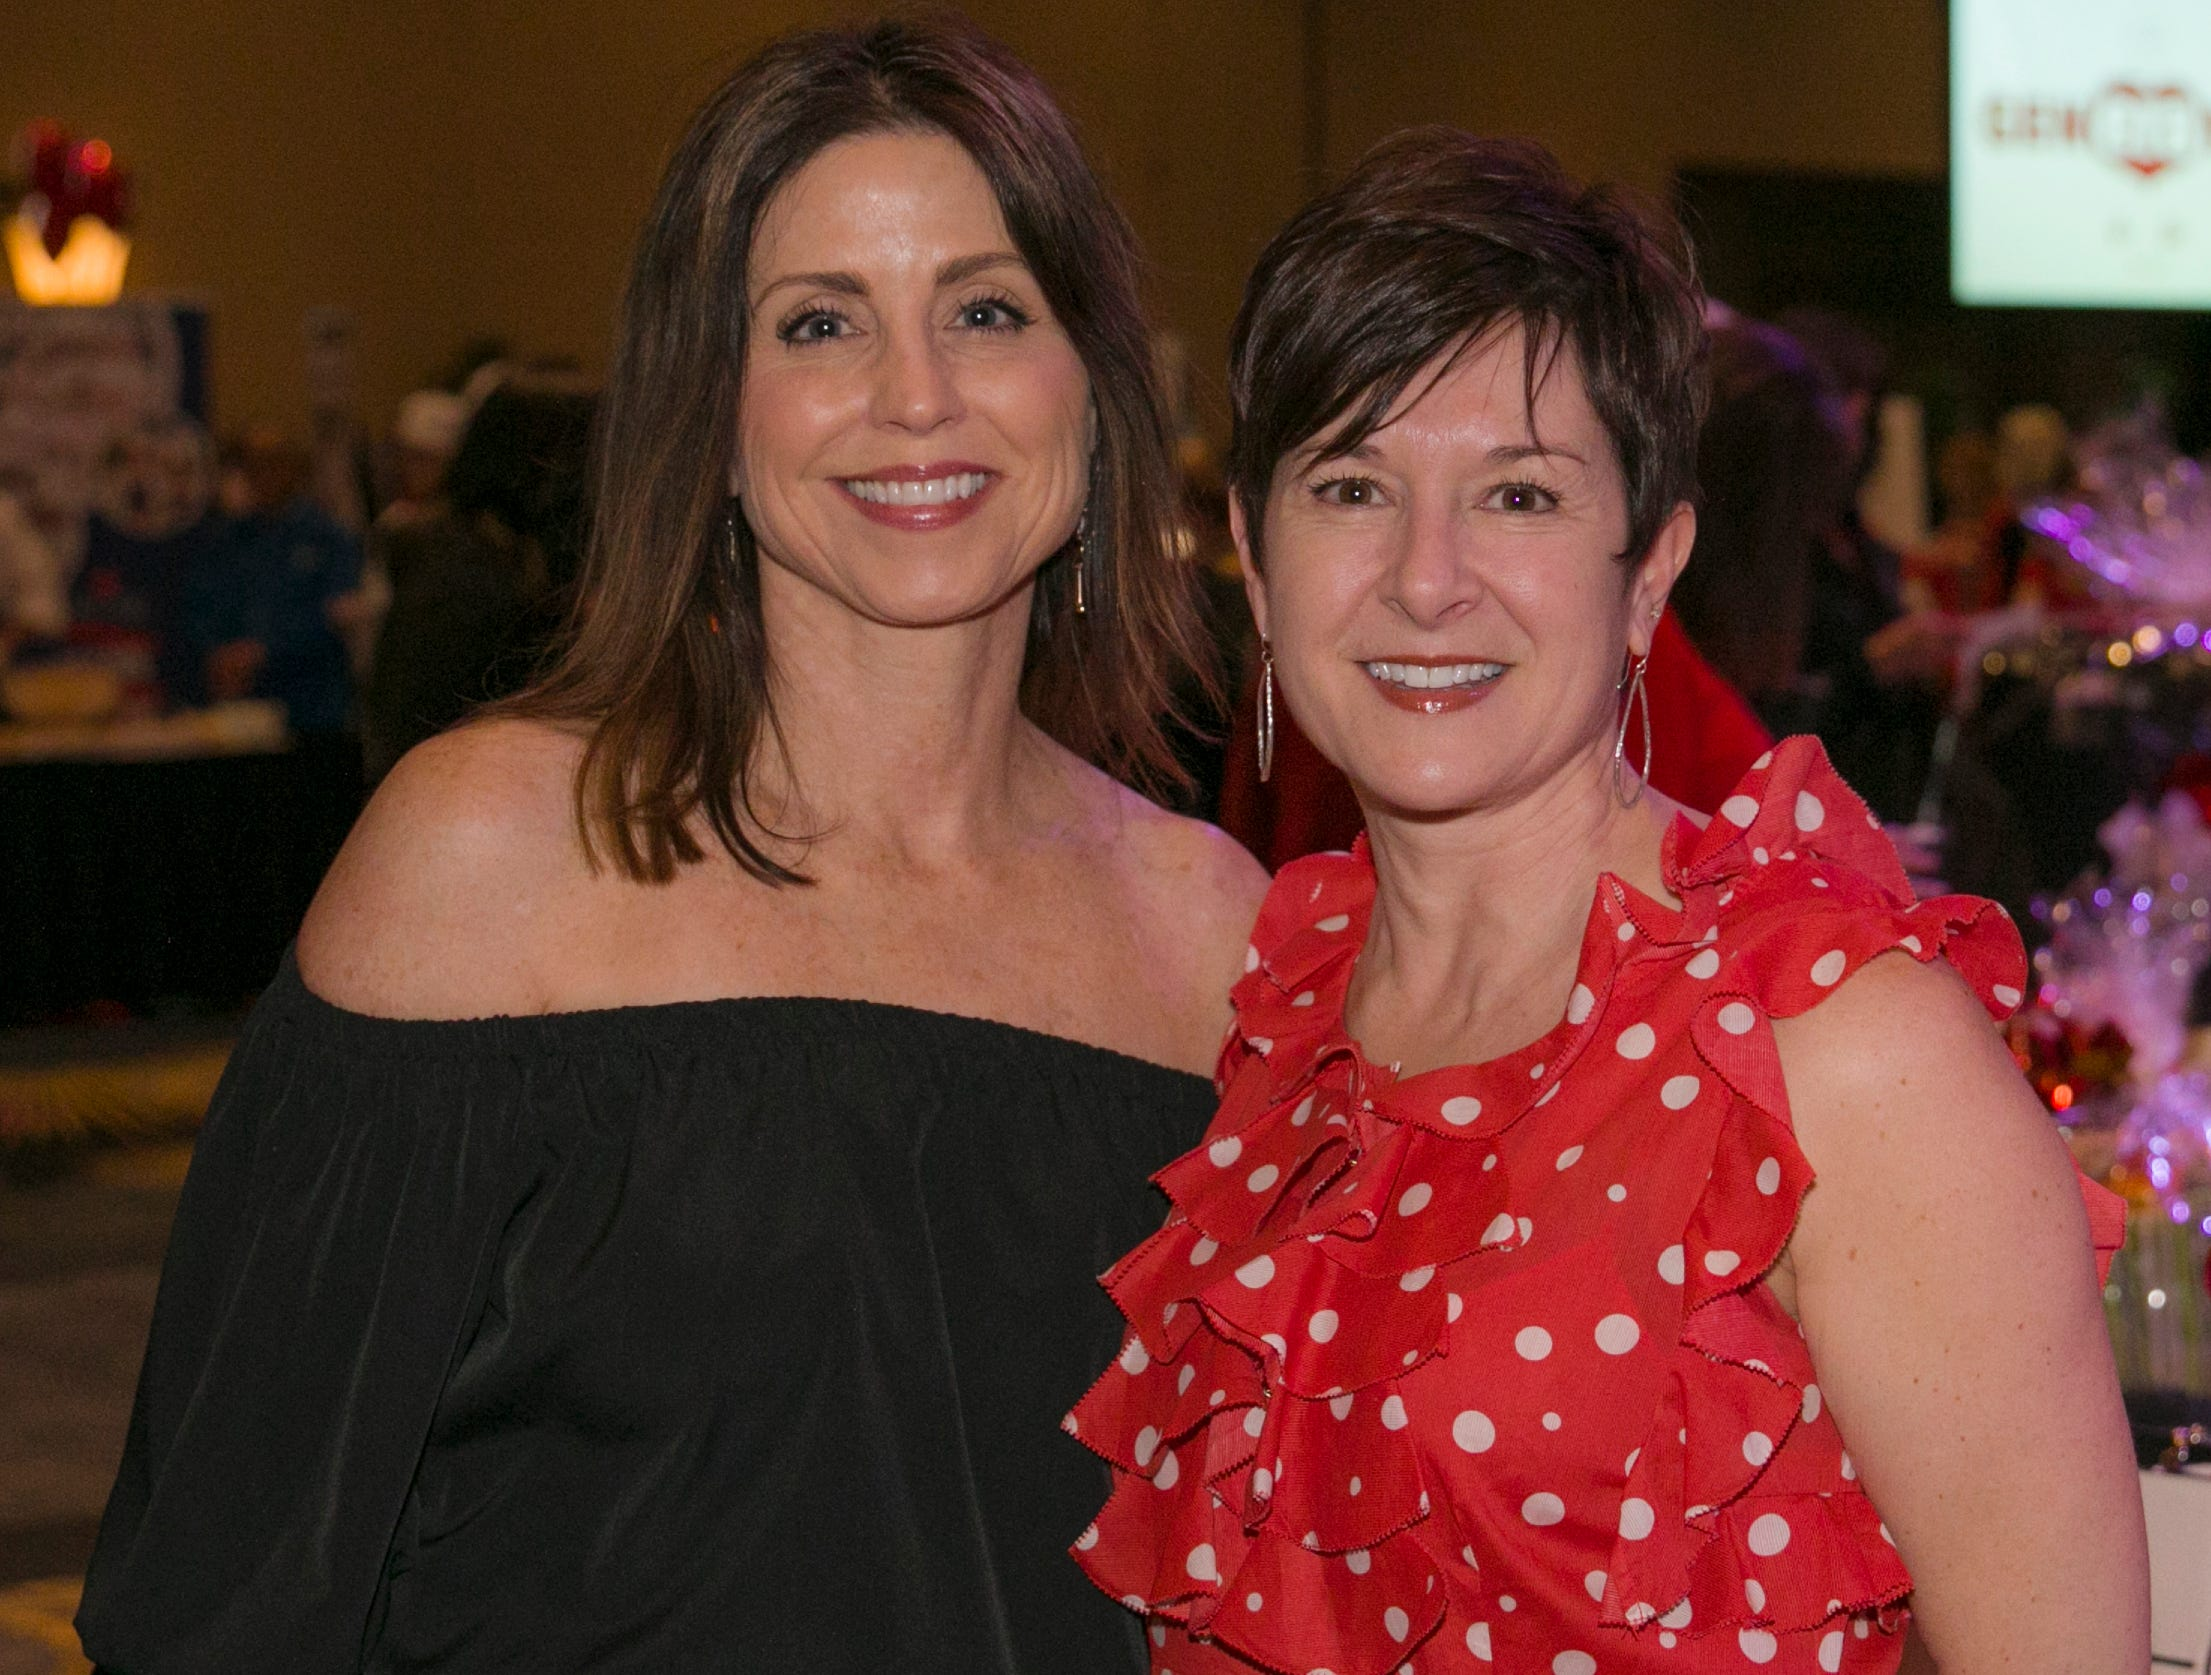 A photograph taken during the 15th Annual Go Red for Women Luncheon on Friday March 1, 2019 held at the downtown Reno Ballroom.